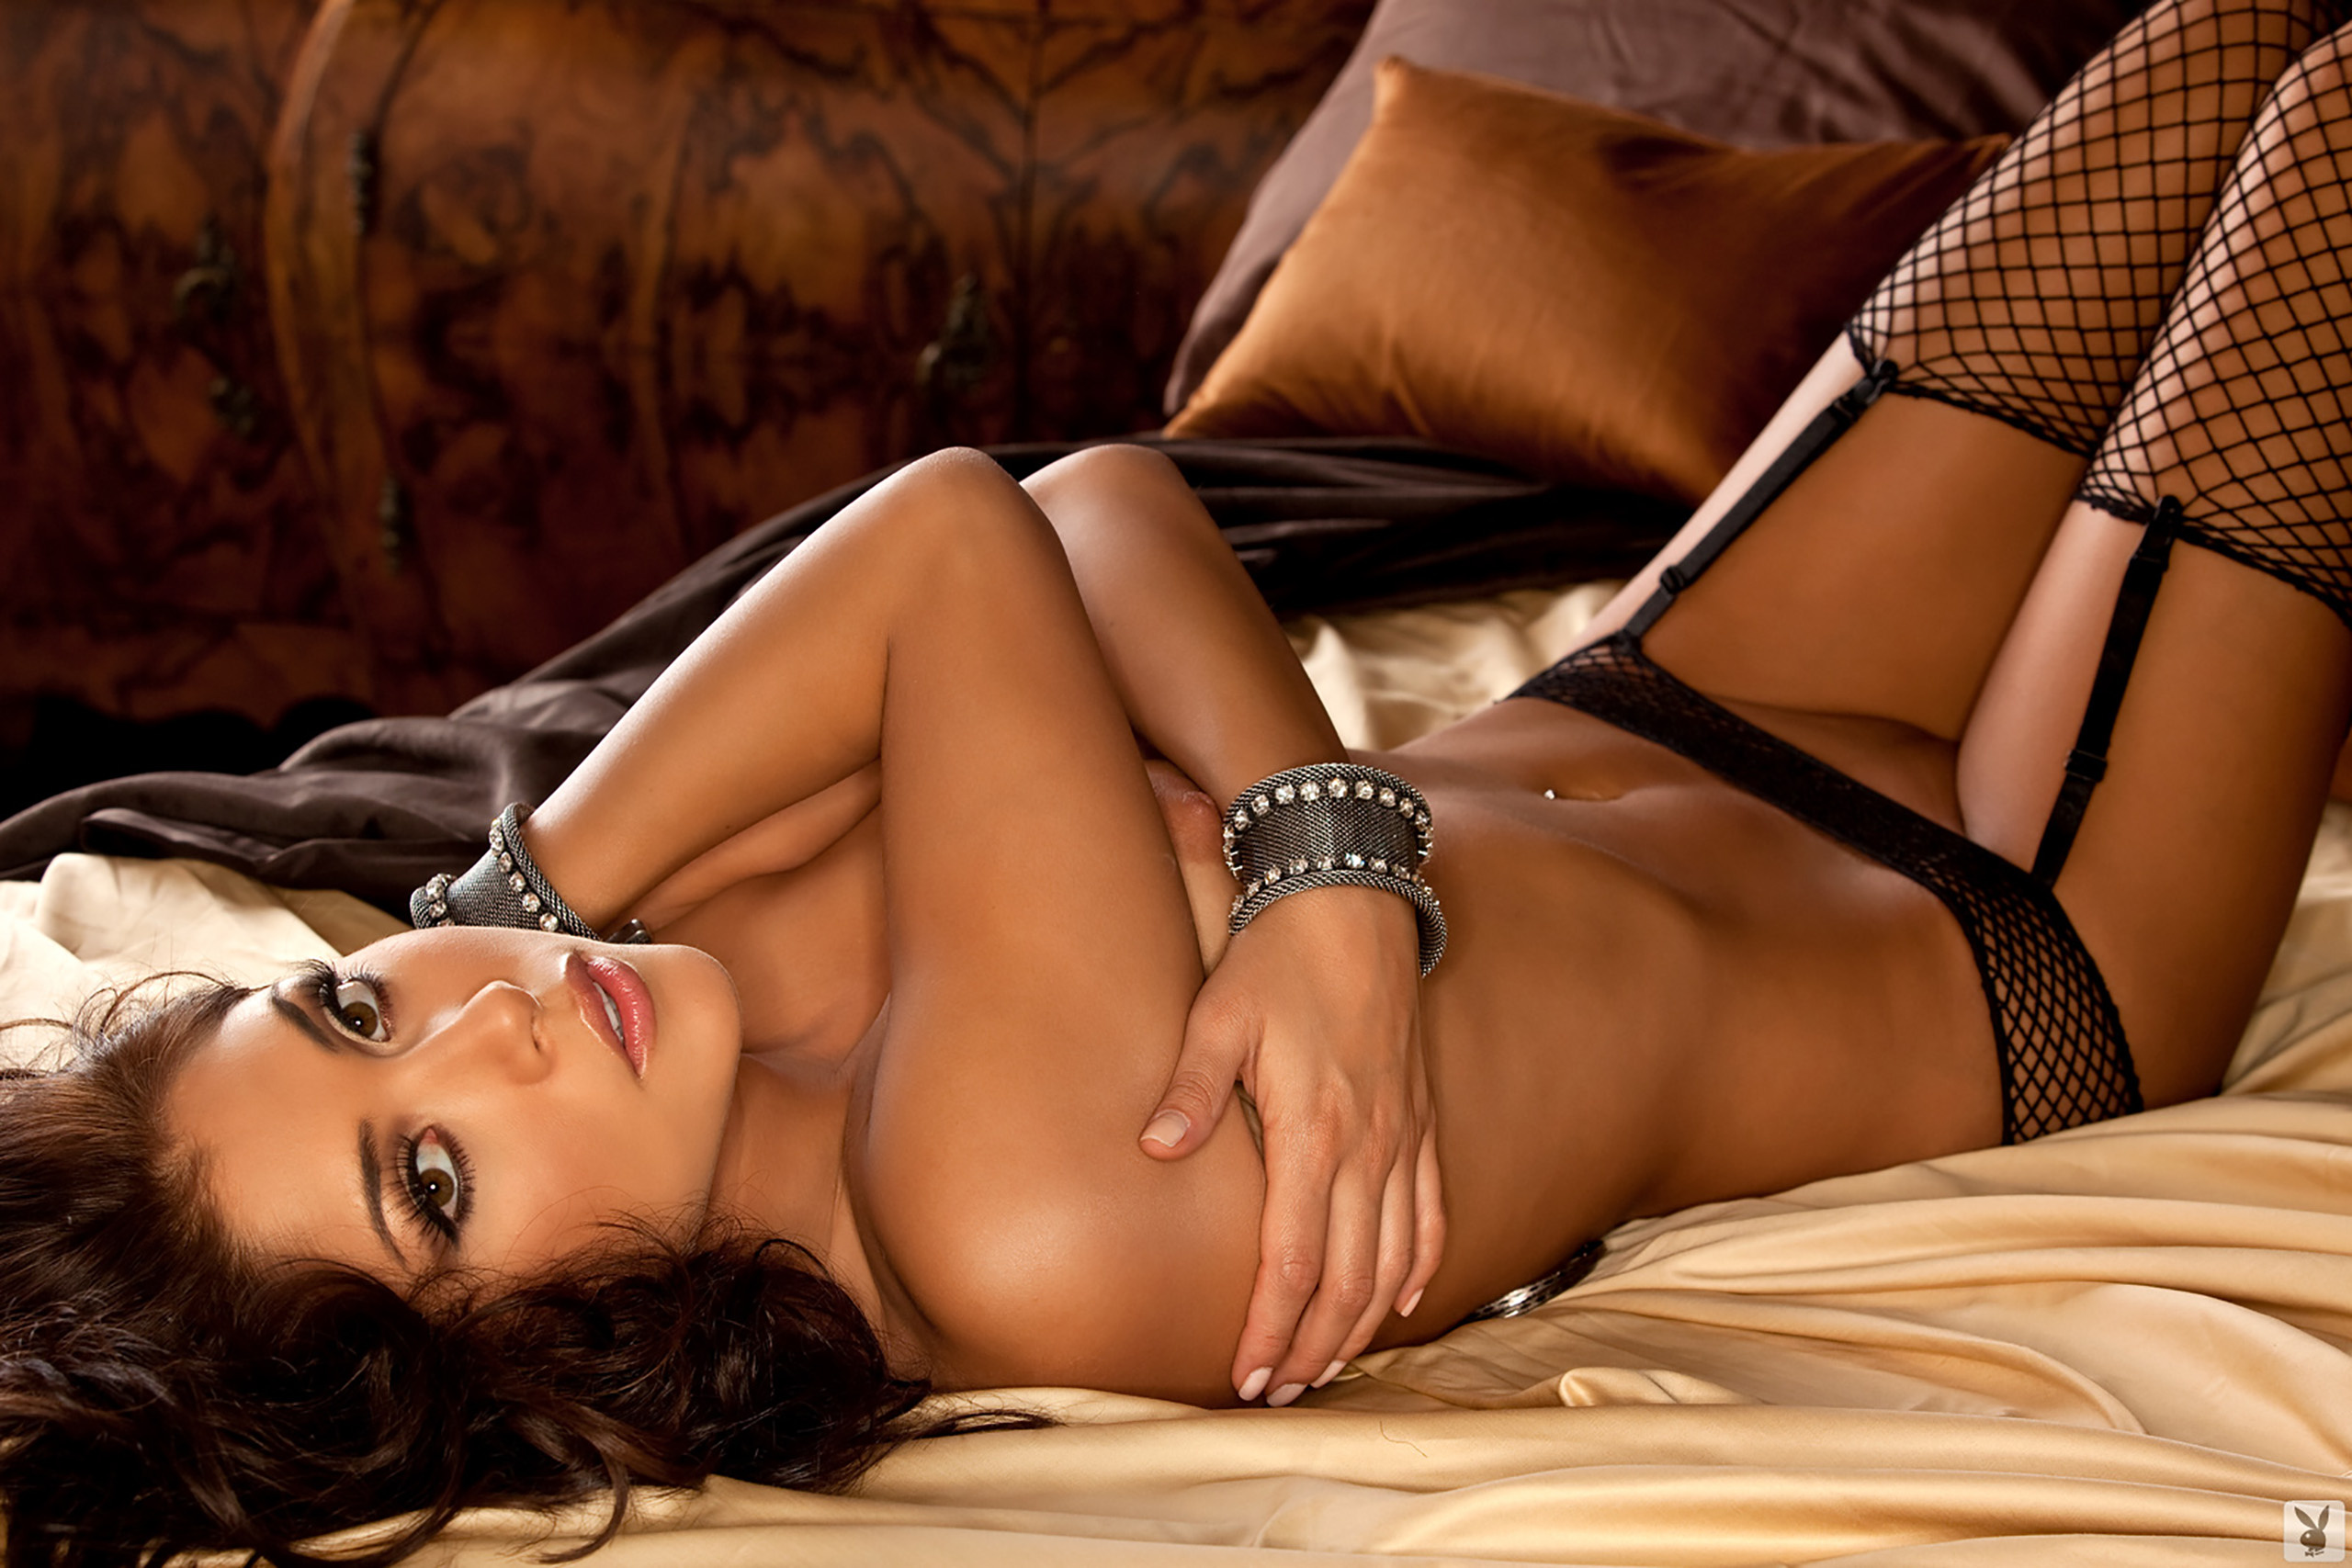 Every nude playboy girls wallpaper